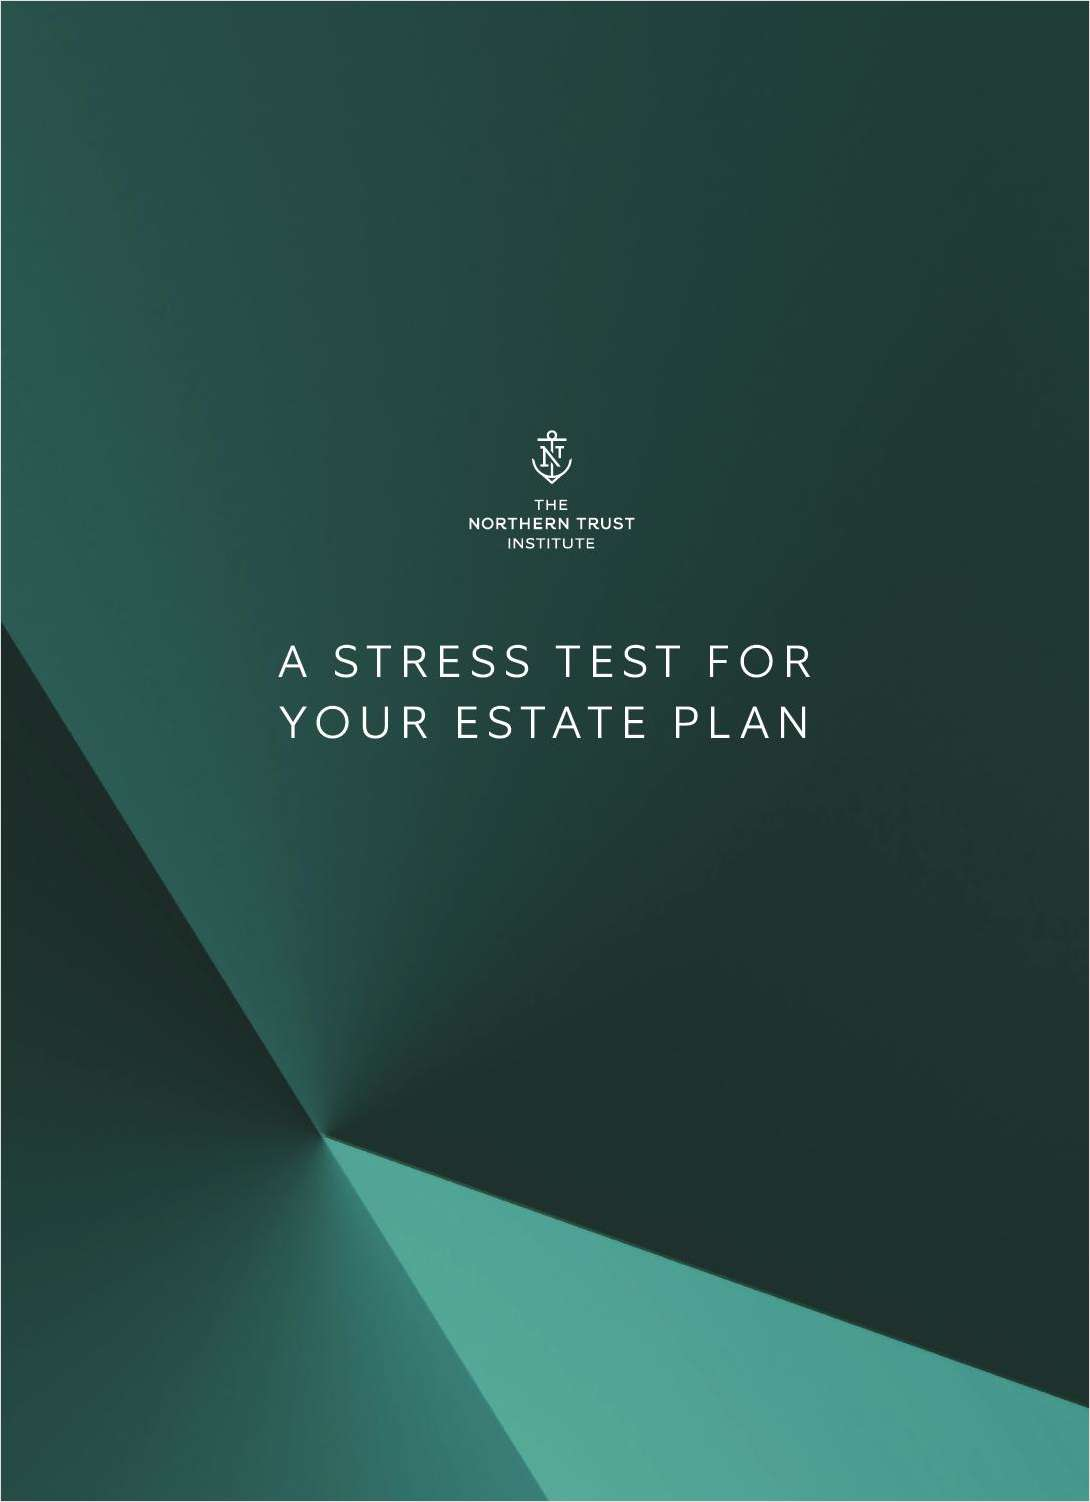 A Stress Test for Your Estate Plan